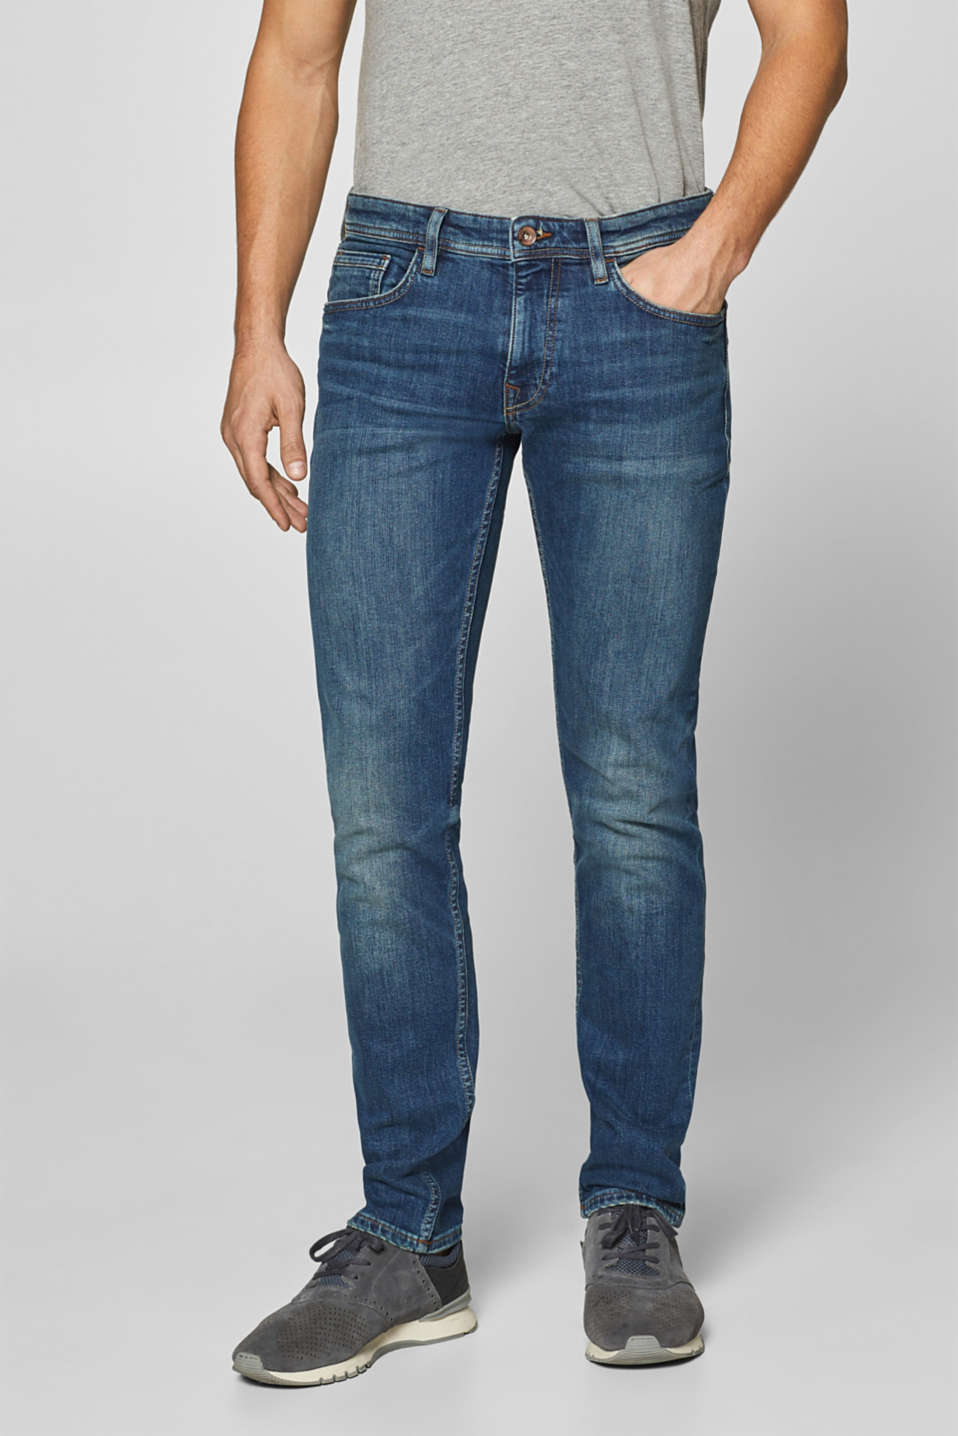 Esprit - Stone wash stretch jeans